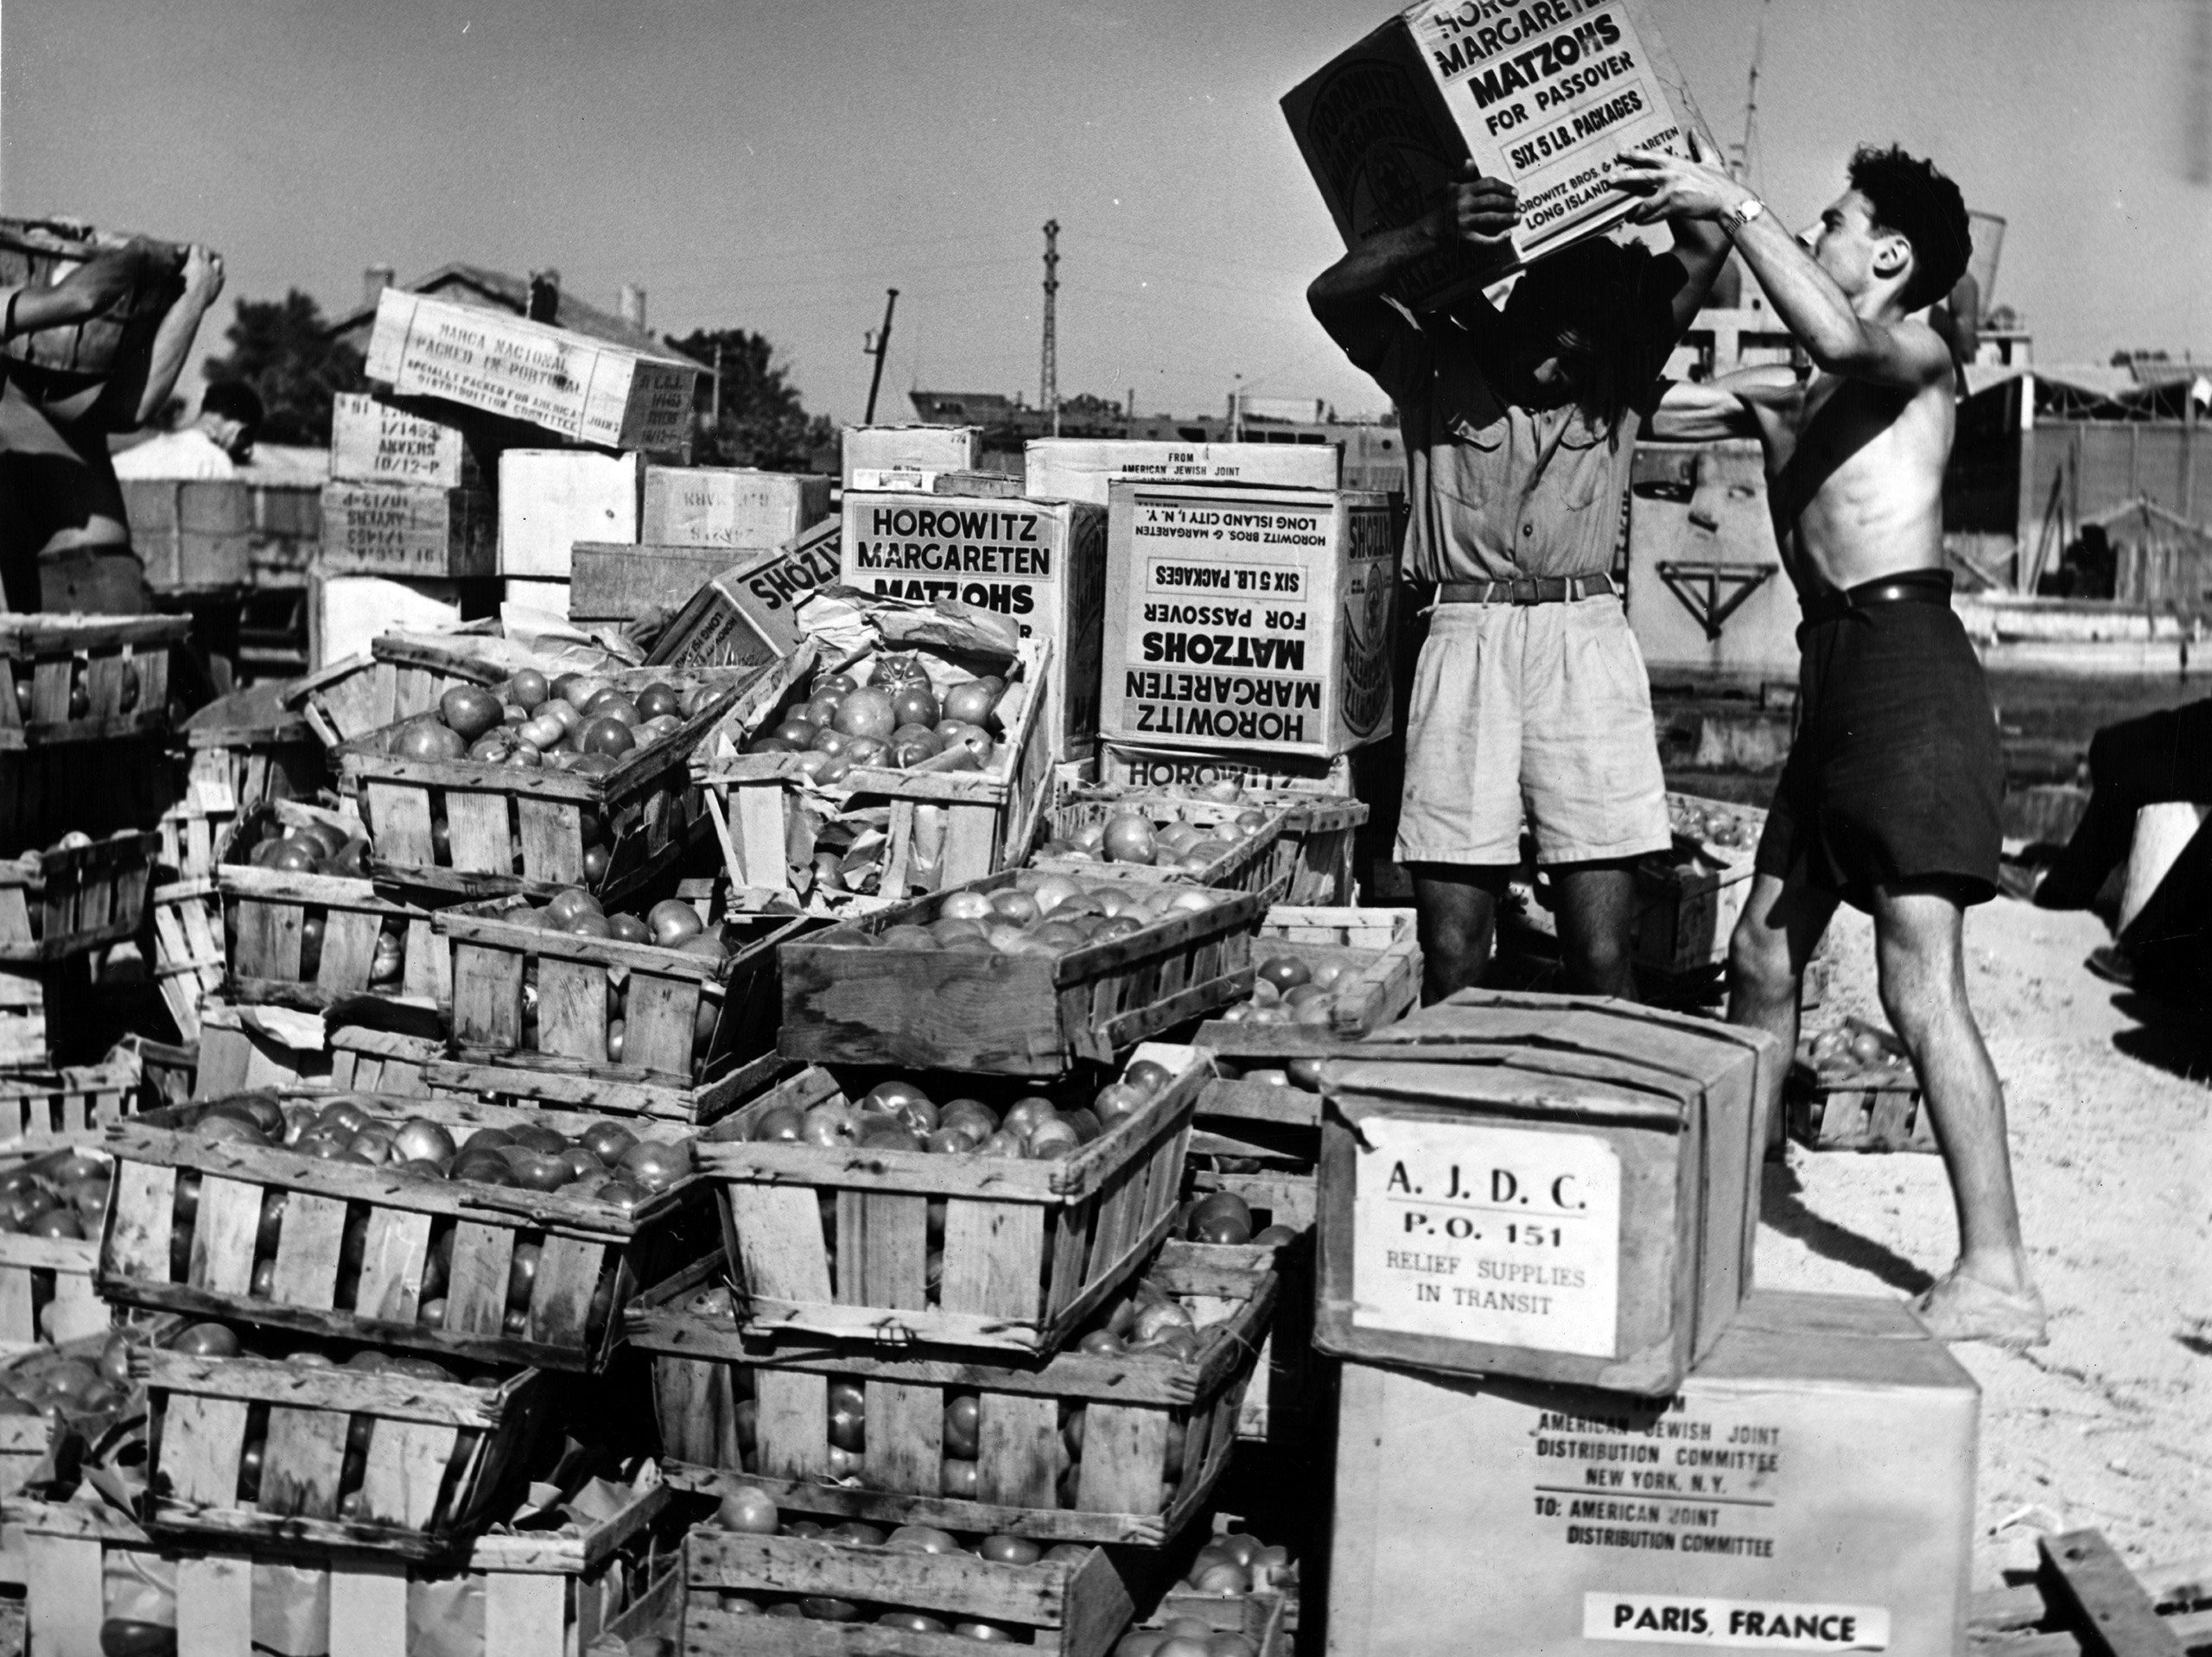 Fresh fruit and Passover matzo being delivered to the 4,400 Jewish migrants on the SS Exodus 1947, intercepted by the British attempting to enter Palestine. Port De Bouc, France, c. 1947. Photographer: Al Taylor.